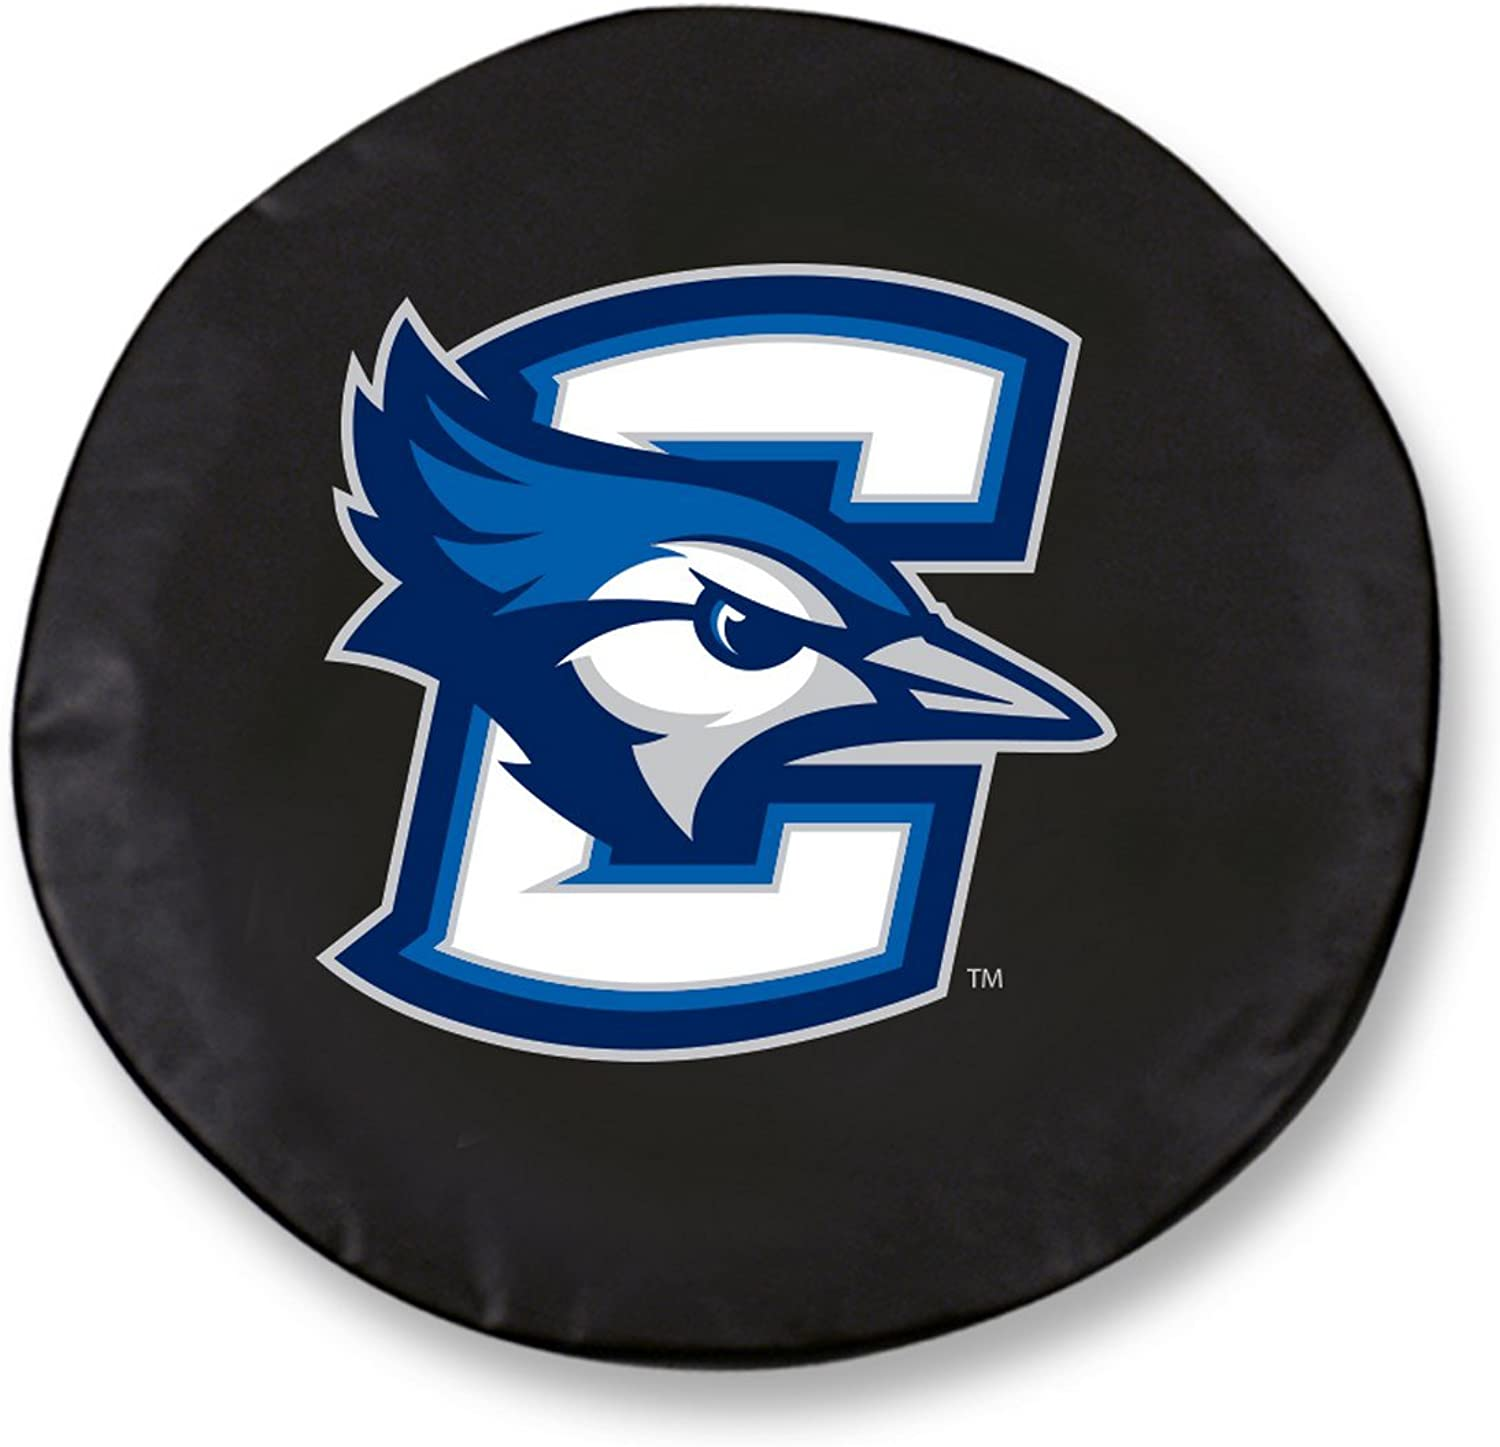 Creighton blueeejays HBS Black Vinyl Fitted Spare Car Tire Cover